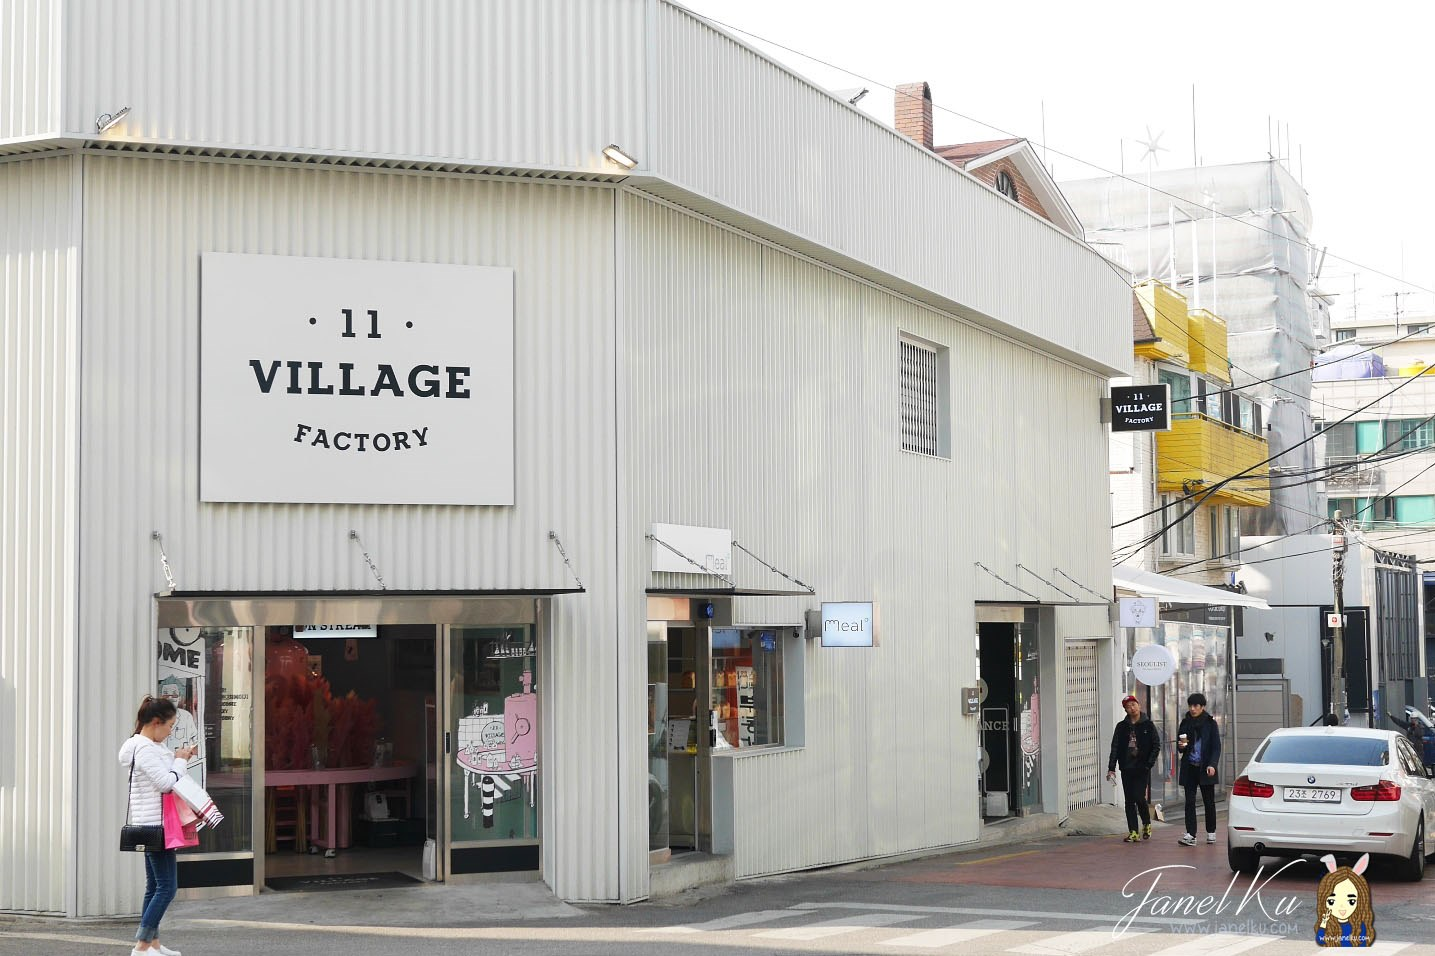 Seoul's Village 11 Factory (빌라쥬11팩토리): #Geek_Strange_Lab and Moisture Cream Review